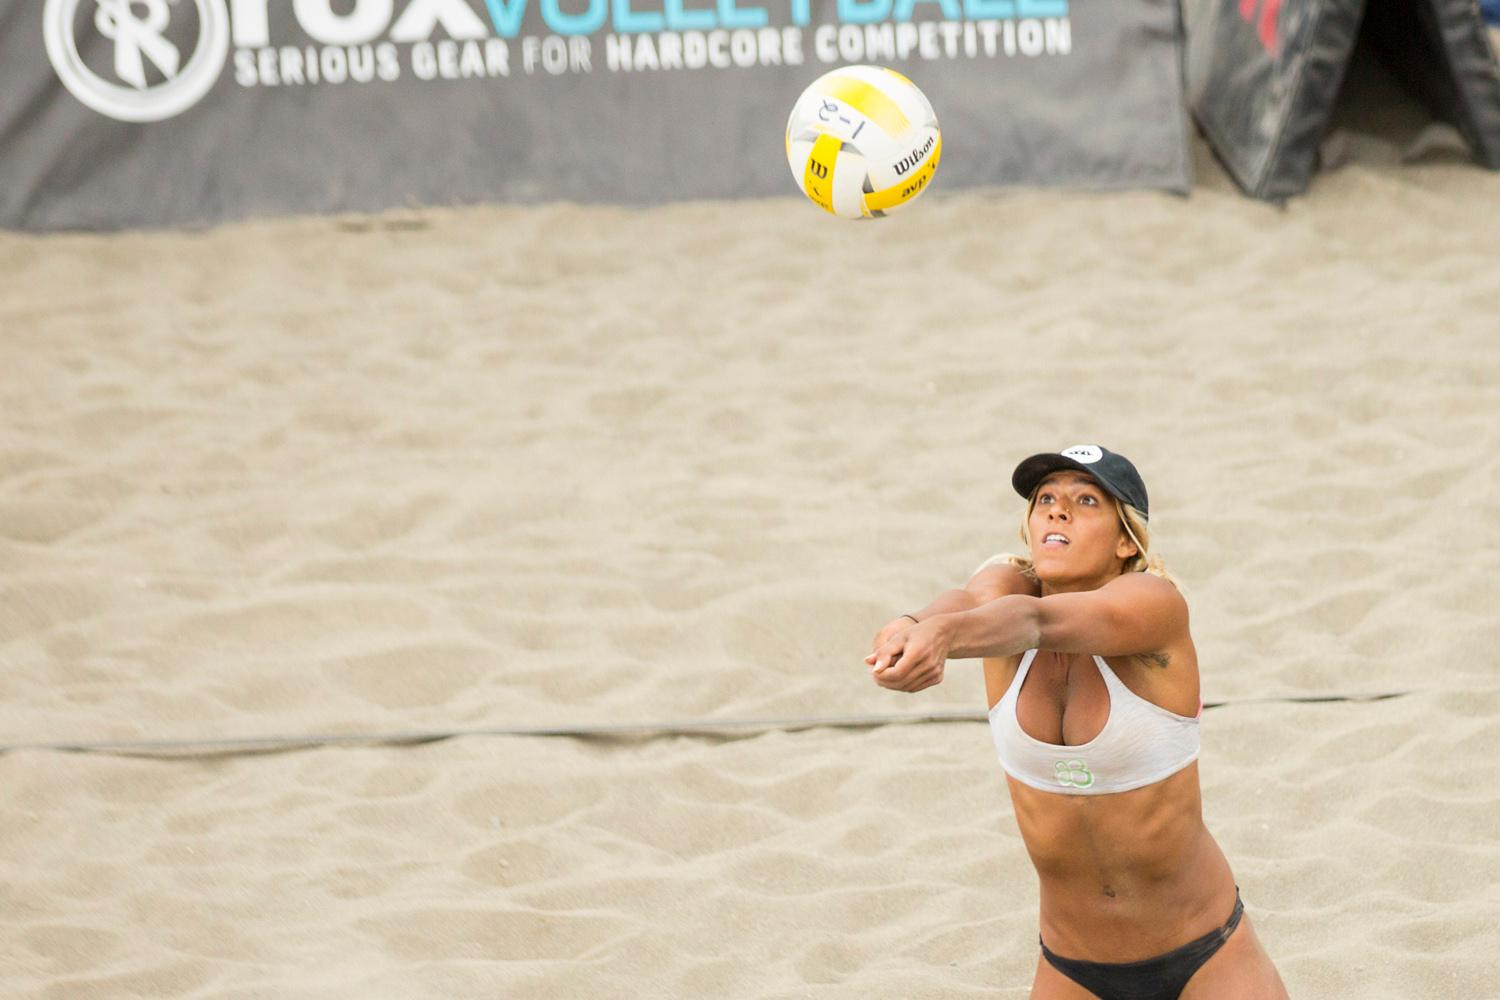 Volleyball athletes take to the beach at Lake Sammamish State Park for the qualifiers of the AVP Seattle Open. The tournament will continue over the weekend, and the winners will walk away with the Pacific Northwest AVP trophy.